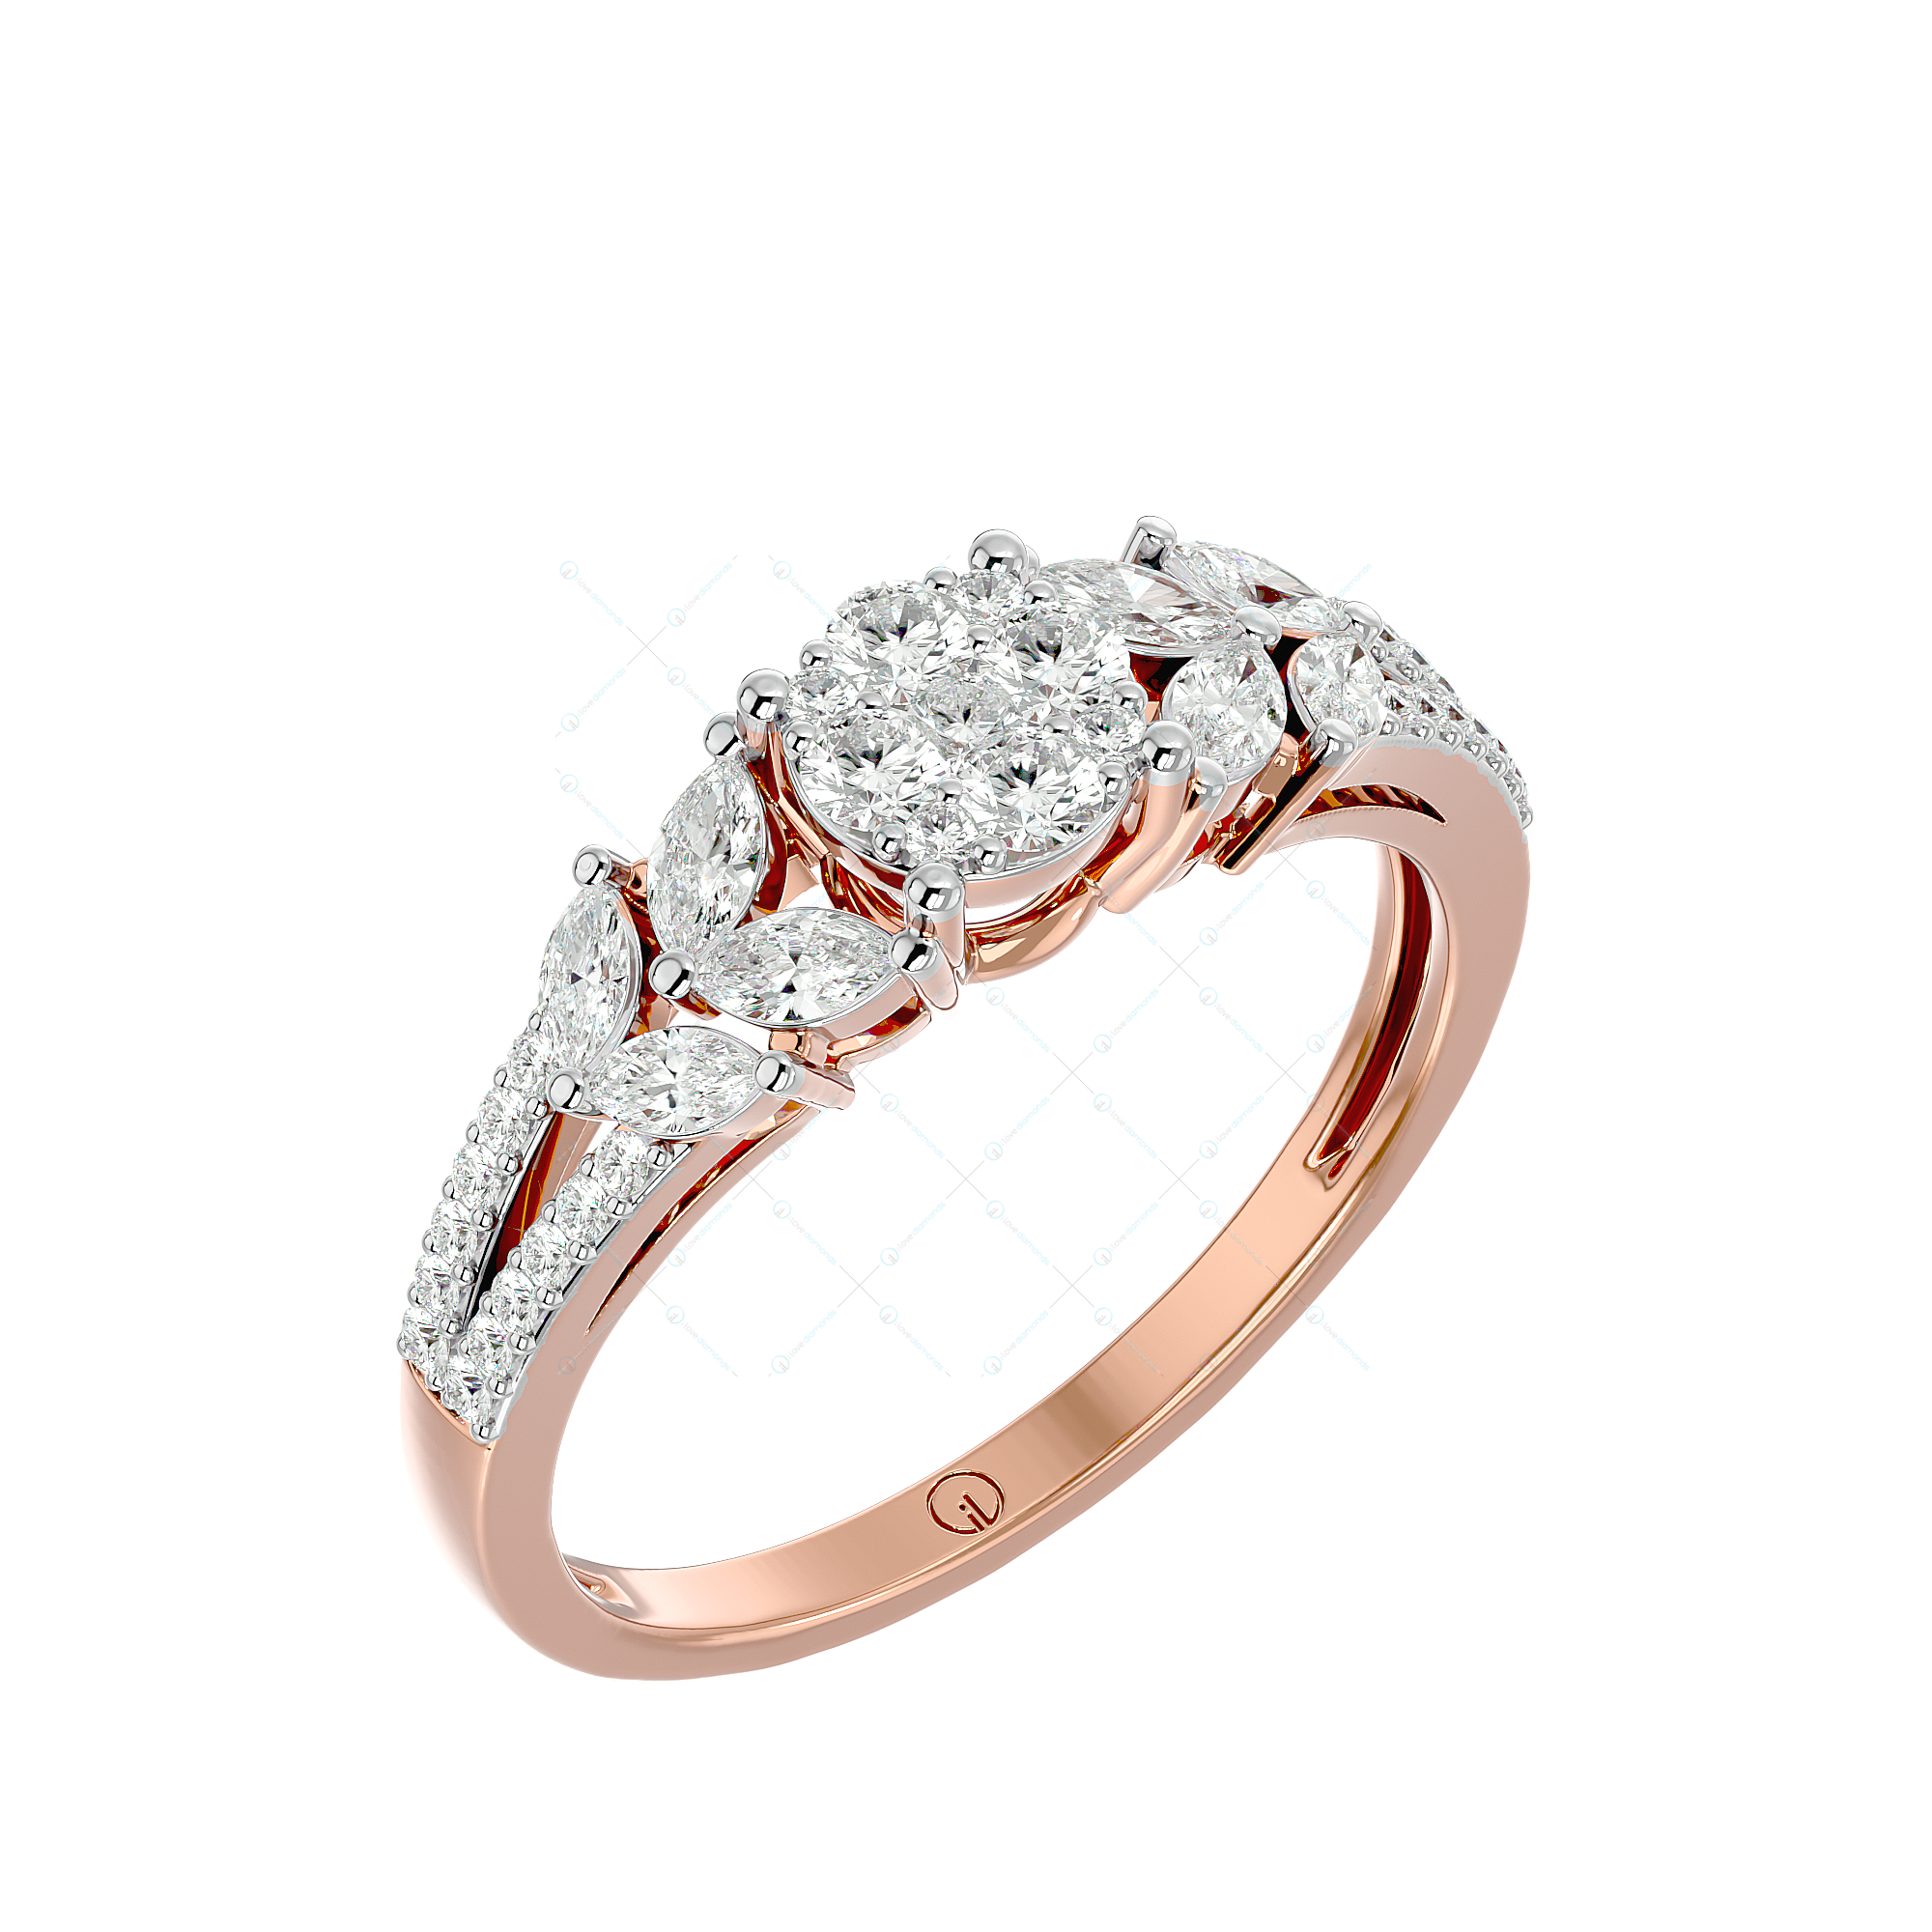 Beauteous Behold Diamond Ring In Pink Gold For Women v1